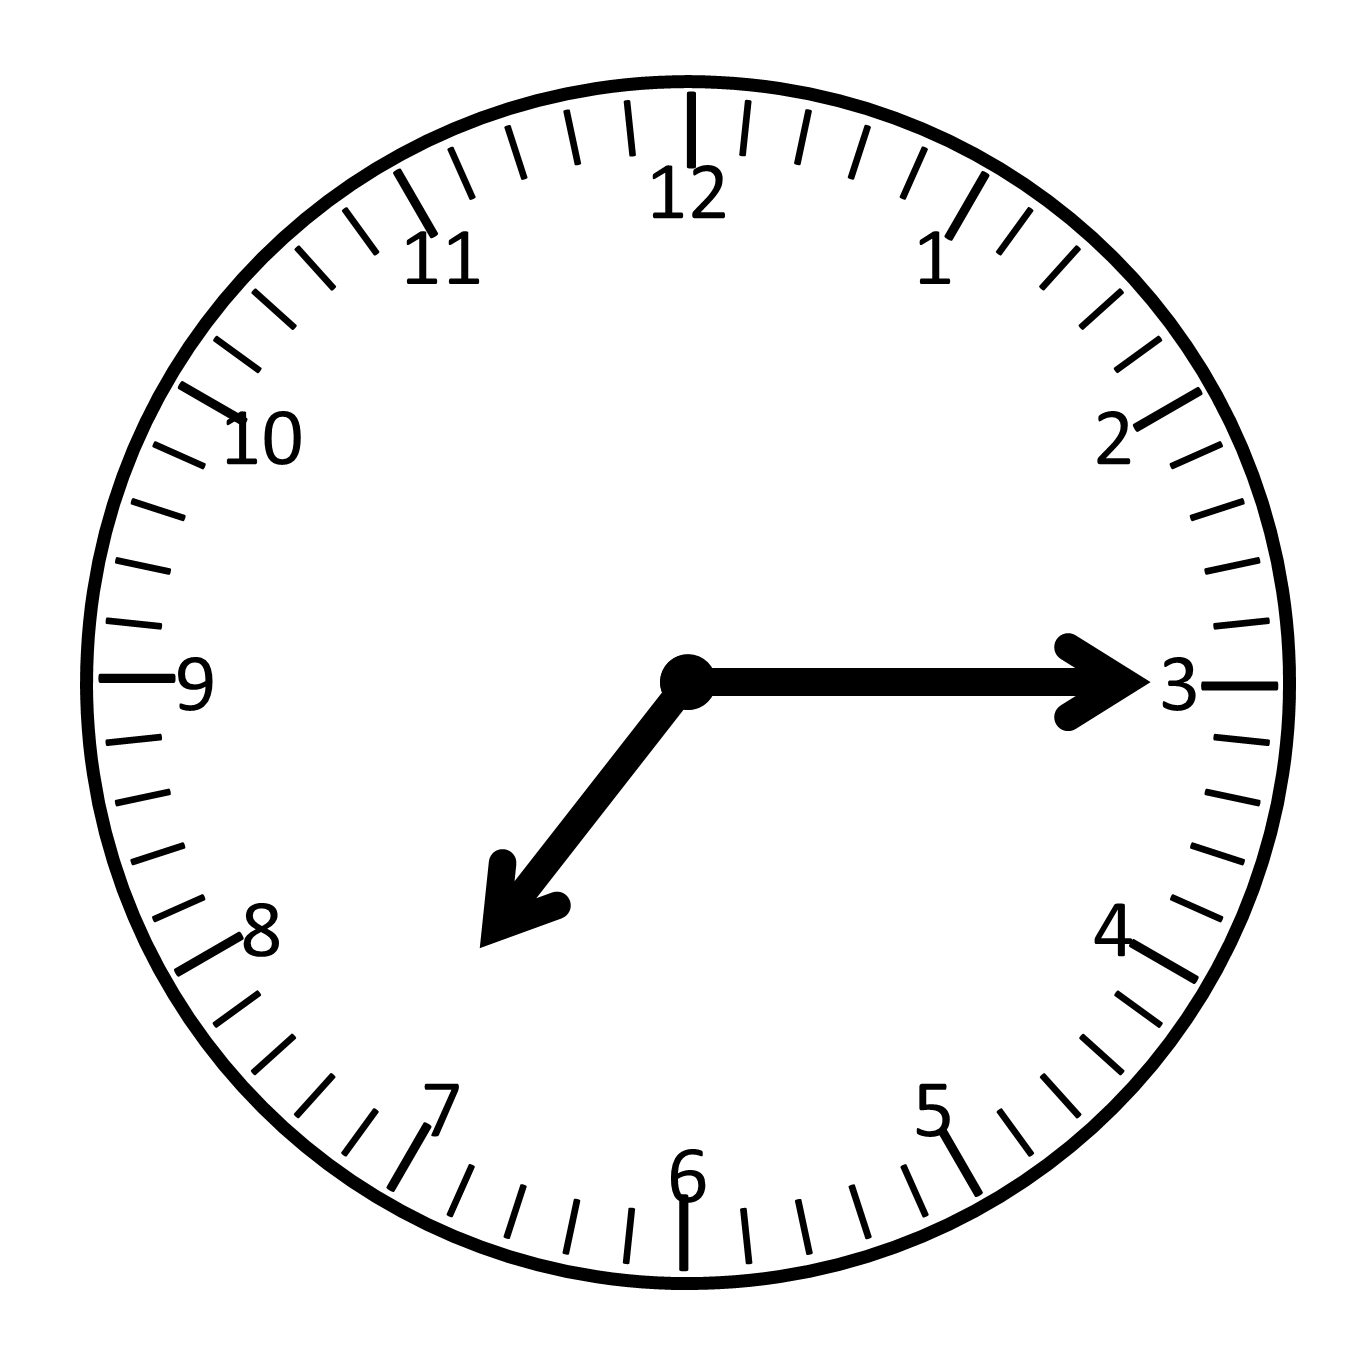 Analog Clock Face Template   Clipart Best